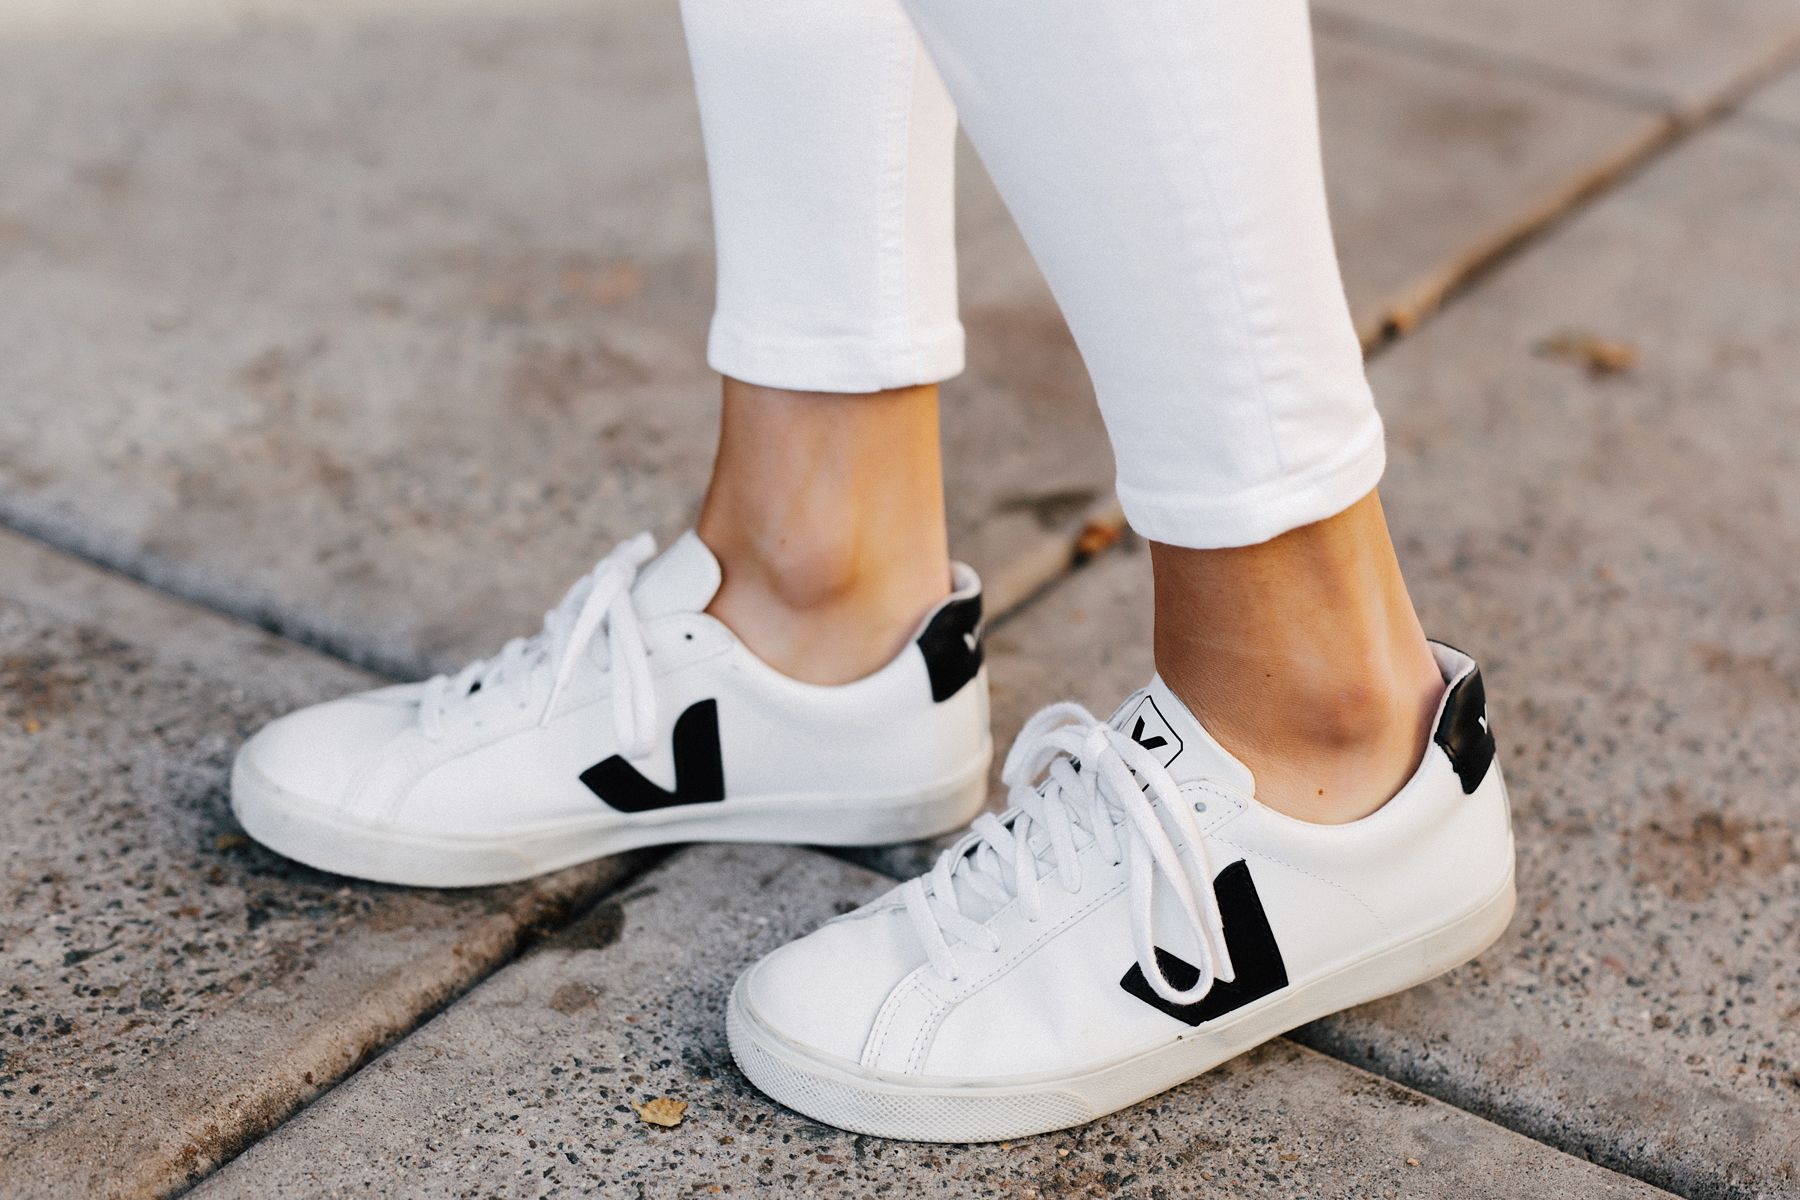 free delivery cozy fresh official photos Woman Wearing Veja Esplar White Sneakers Fashion Jackson San ...